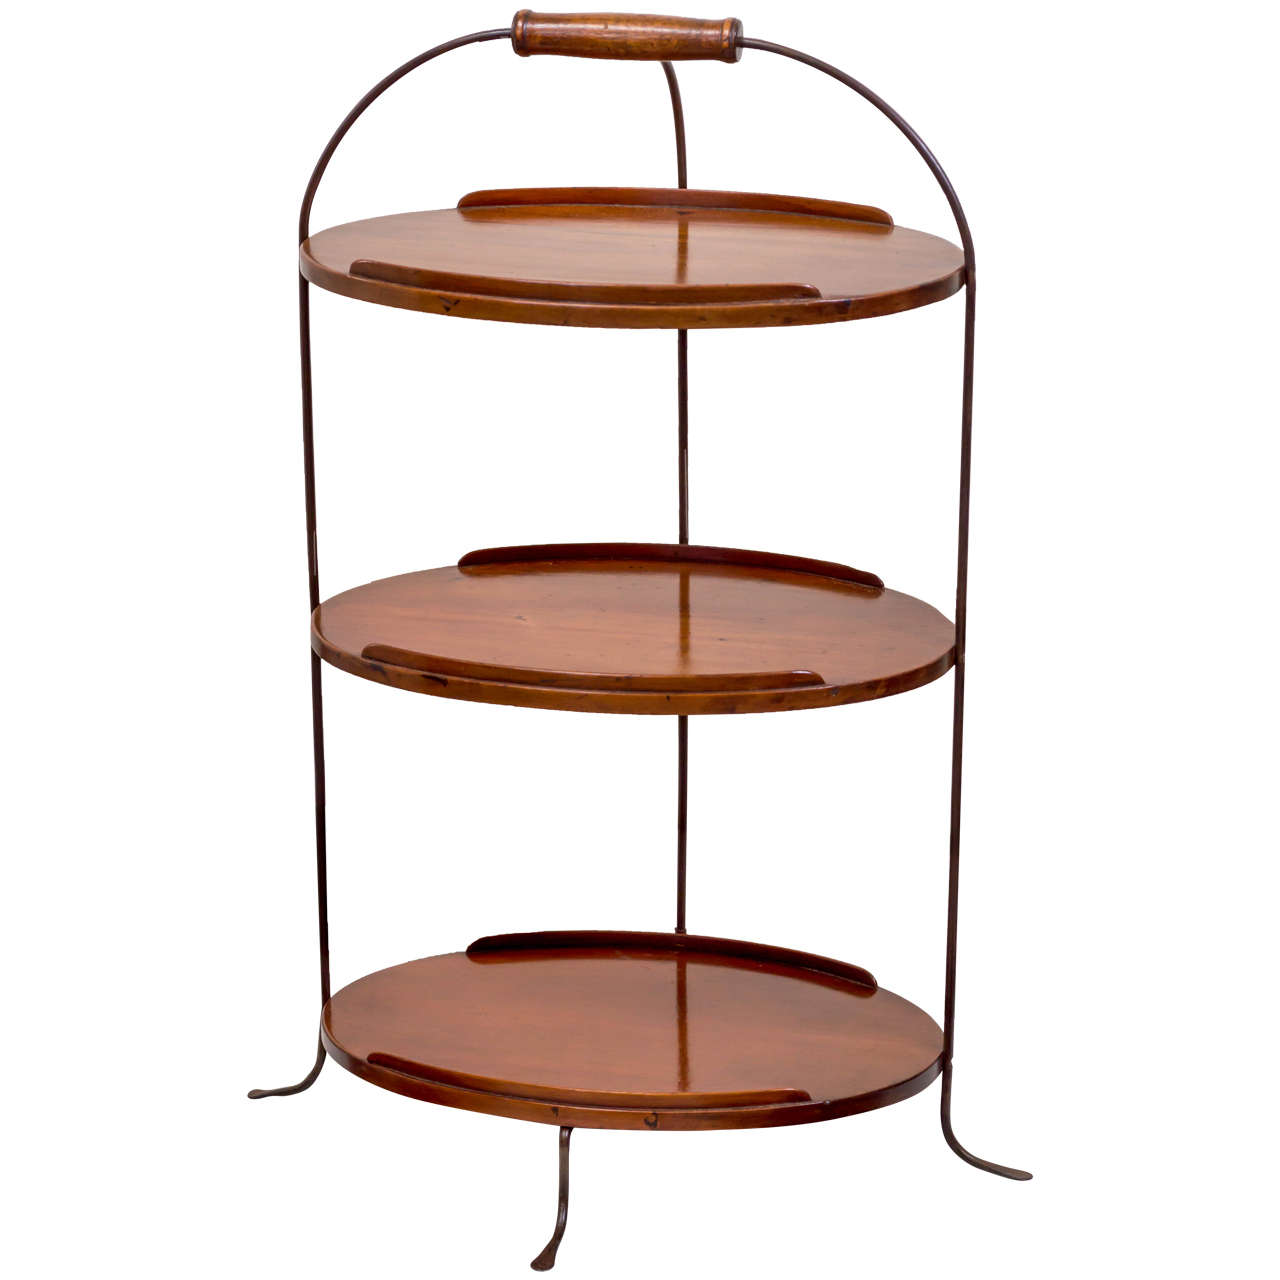 19th Century English Petite Three-Tier Server For Sale